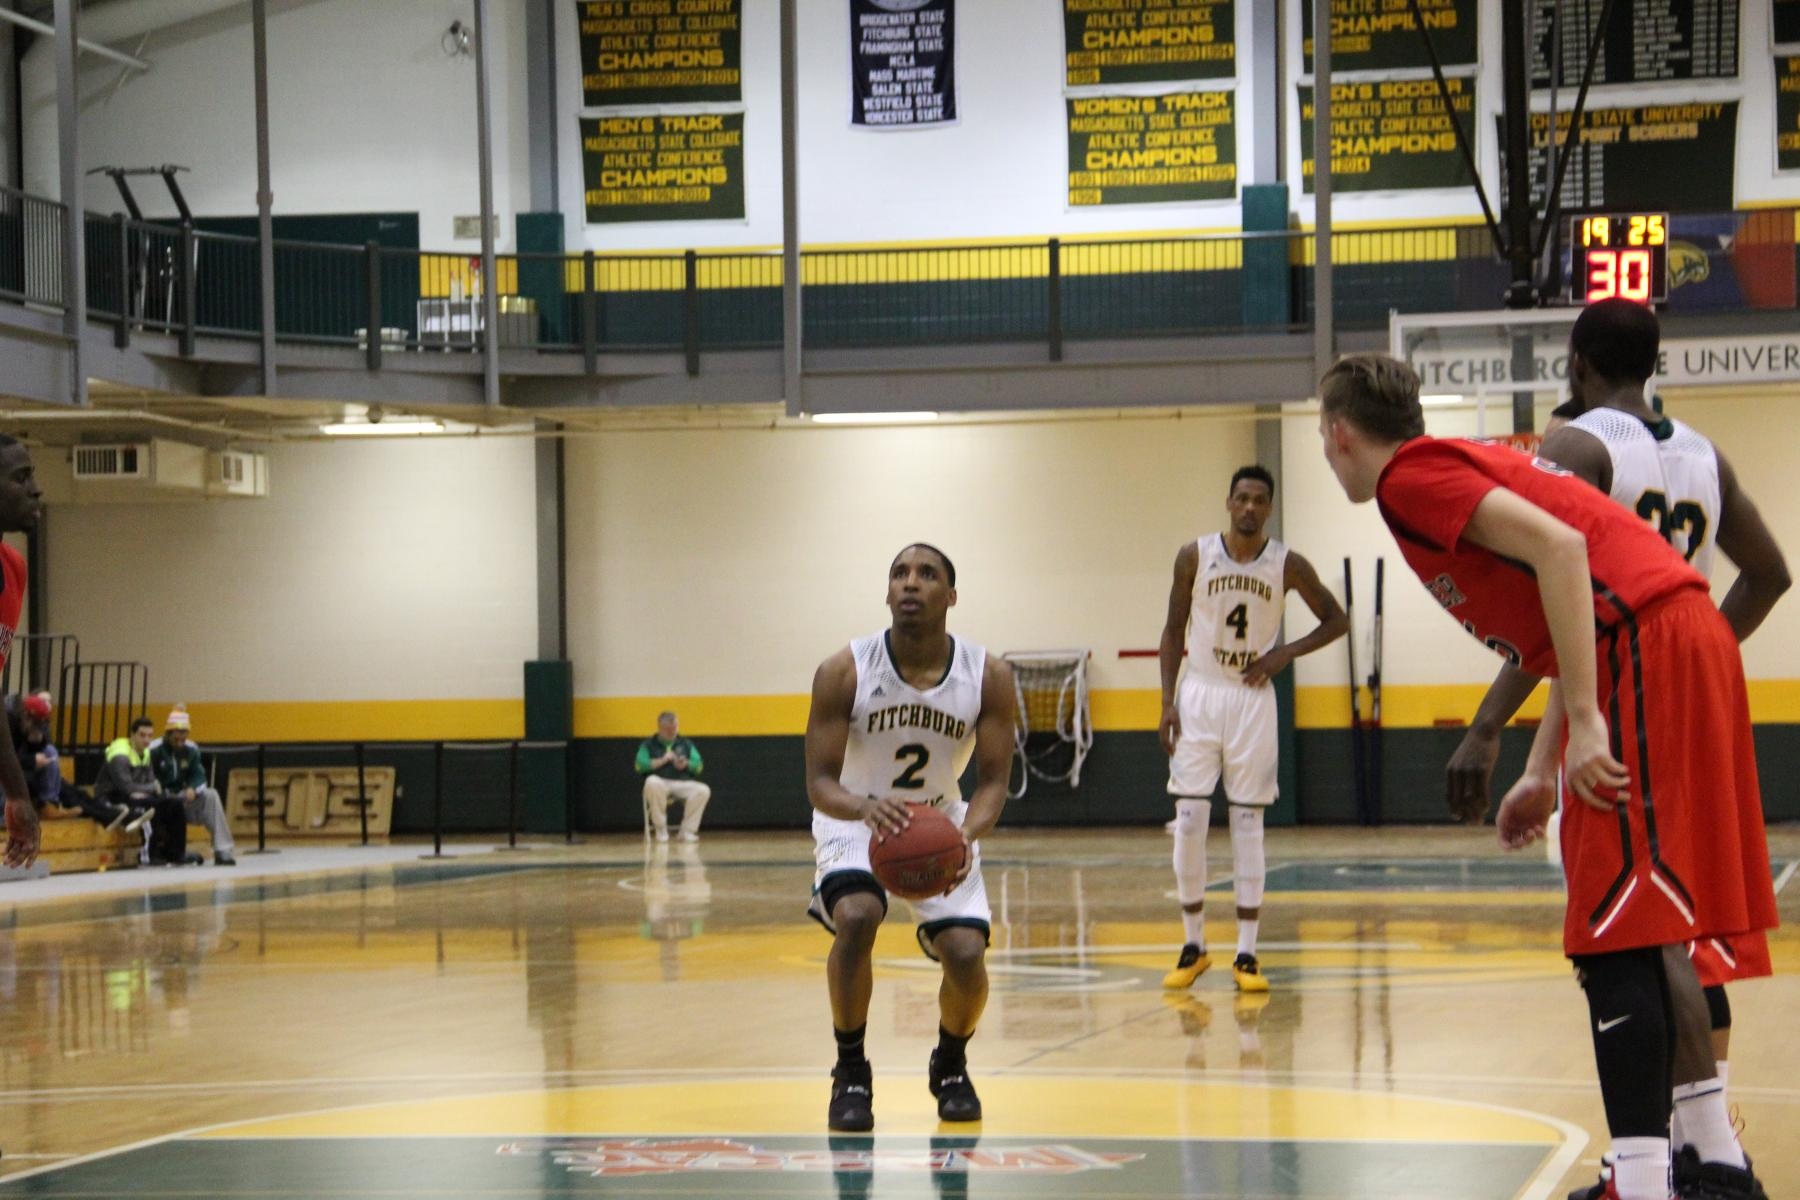 Second-Half Comeback Lifts Fitchburg State Past Brigewater State, 72-61